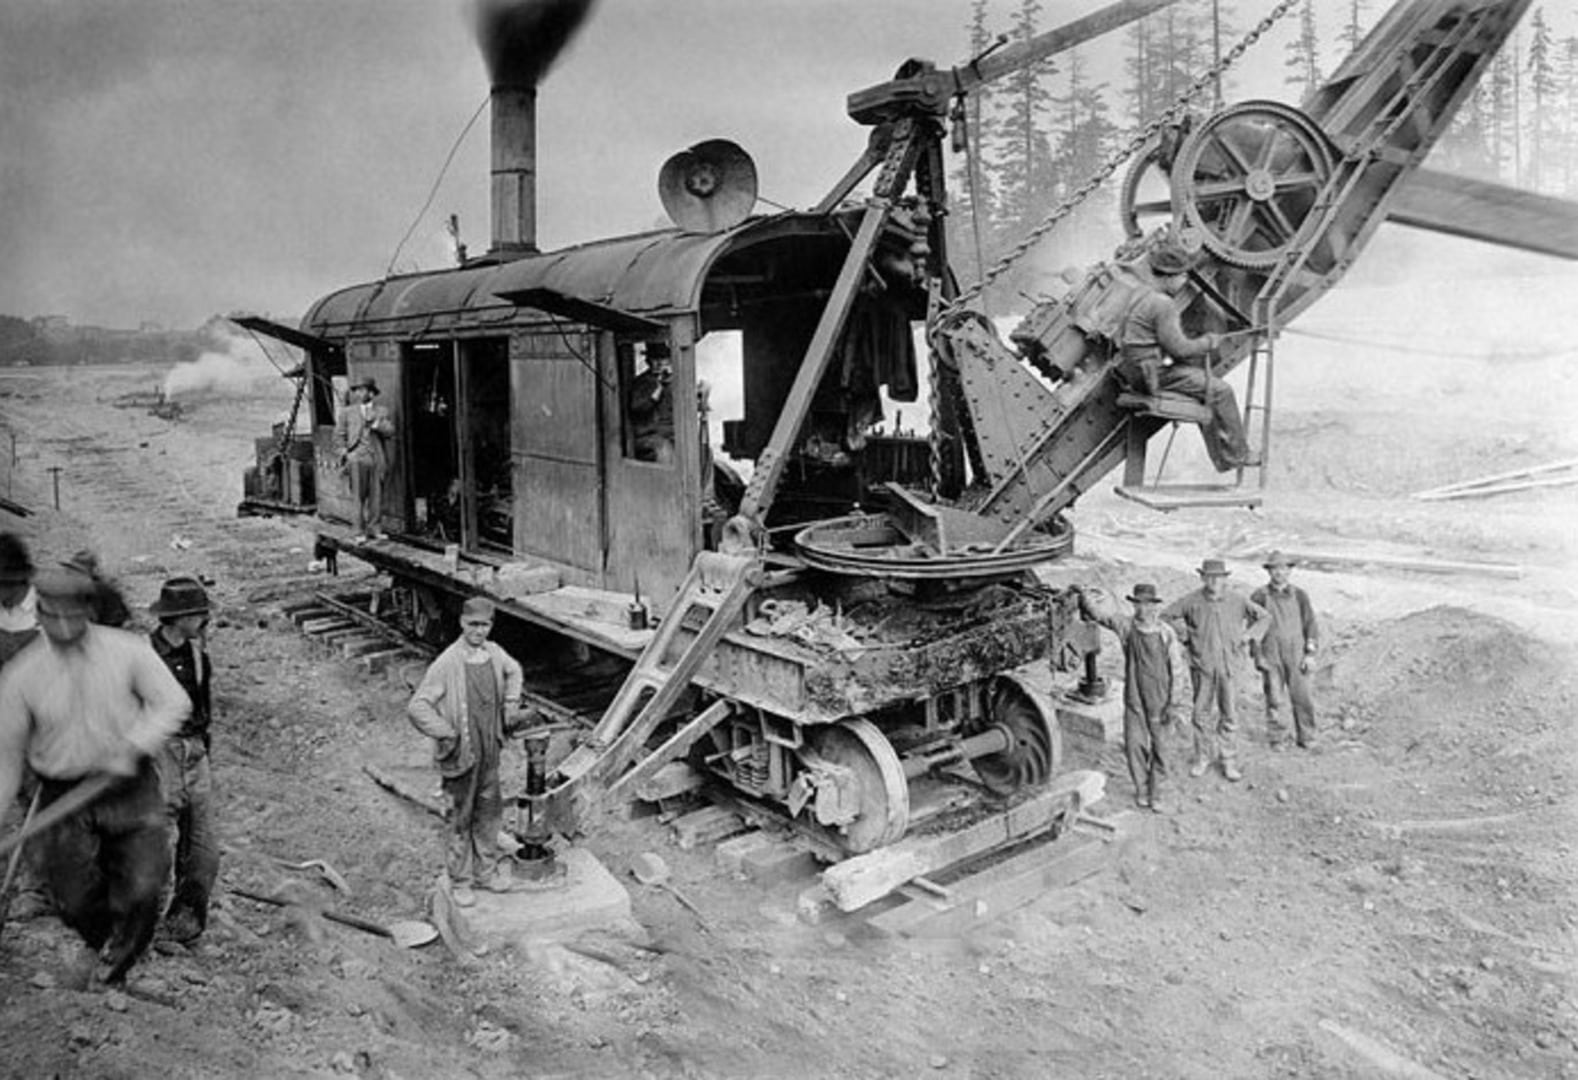 Bucyrus rail mounted steam shovel 65 ton